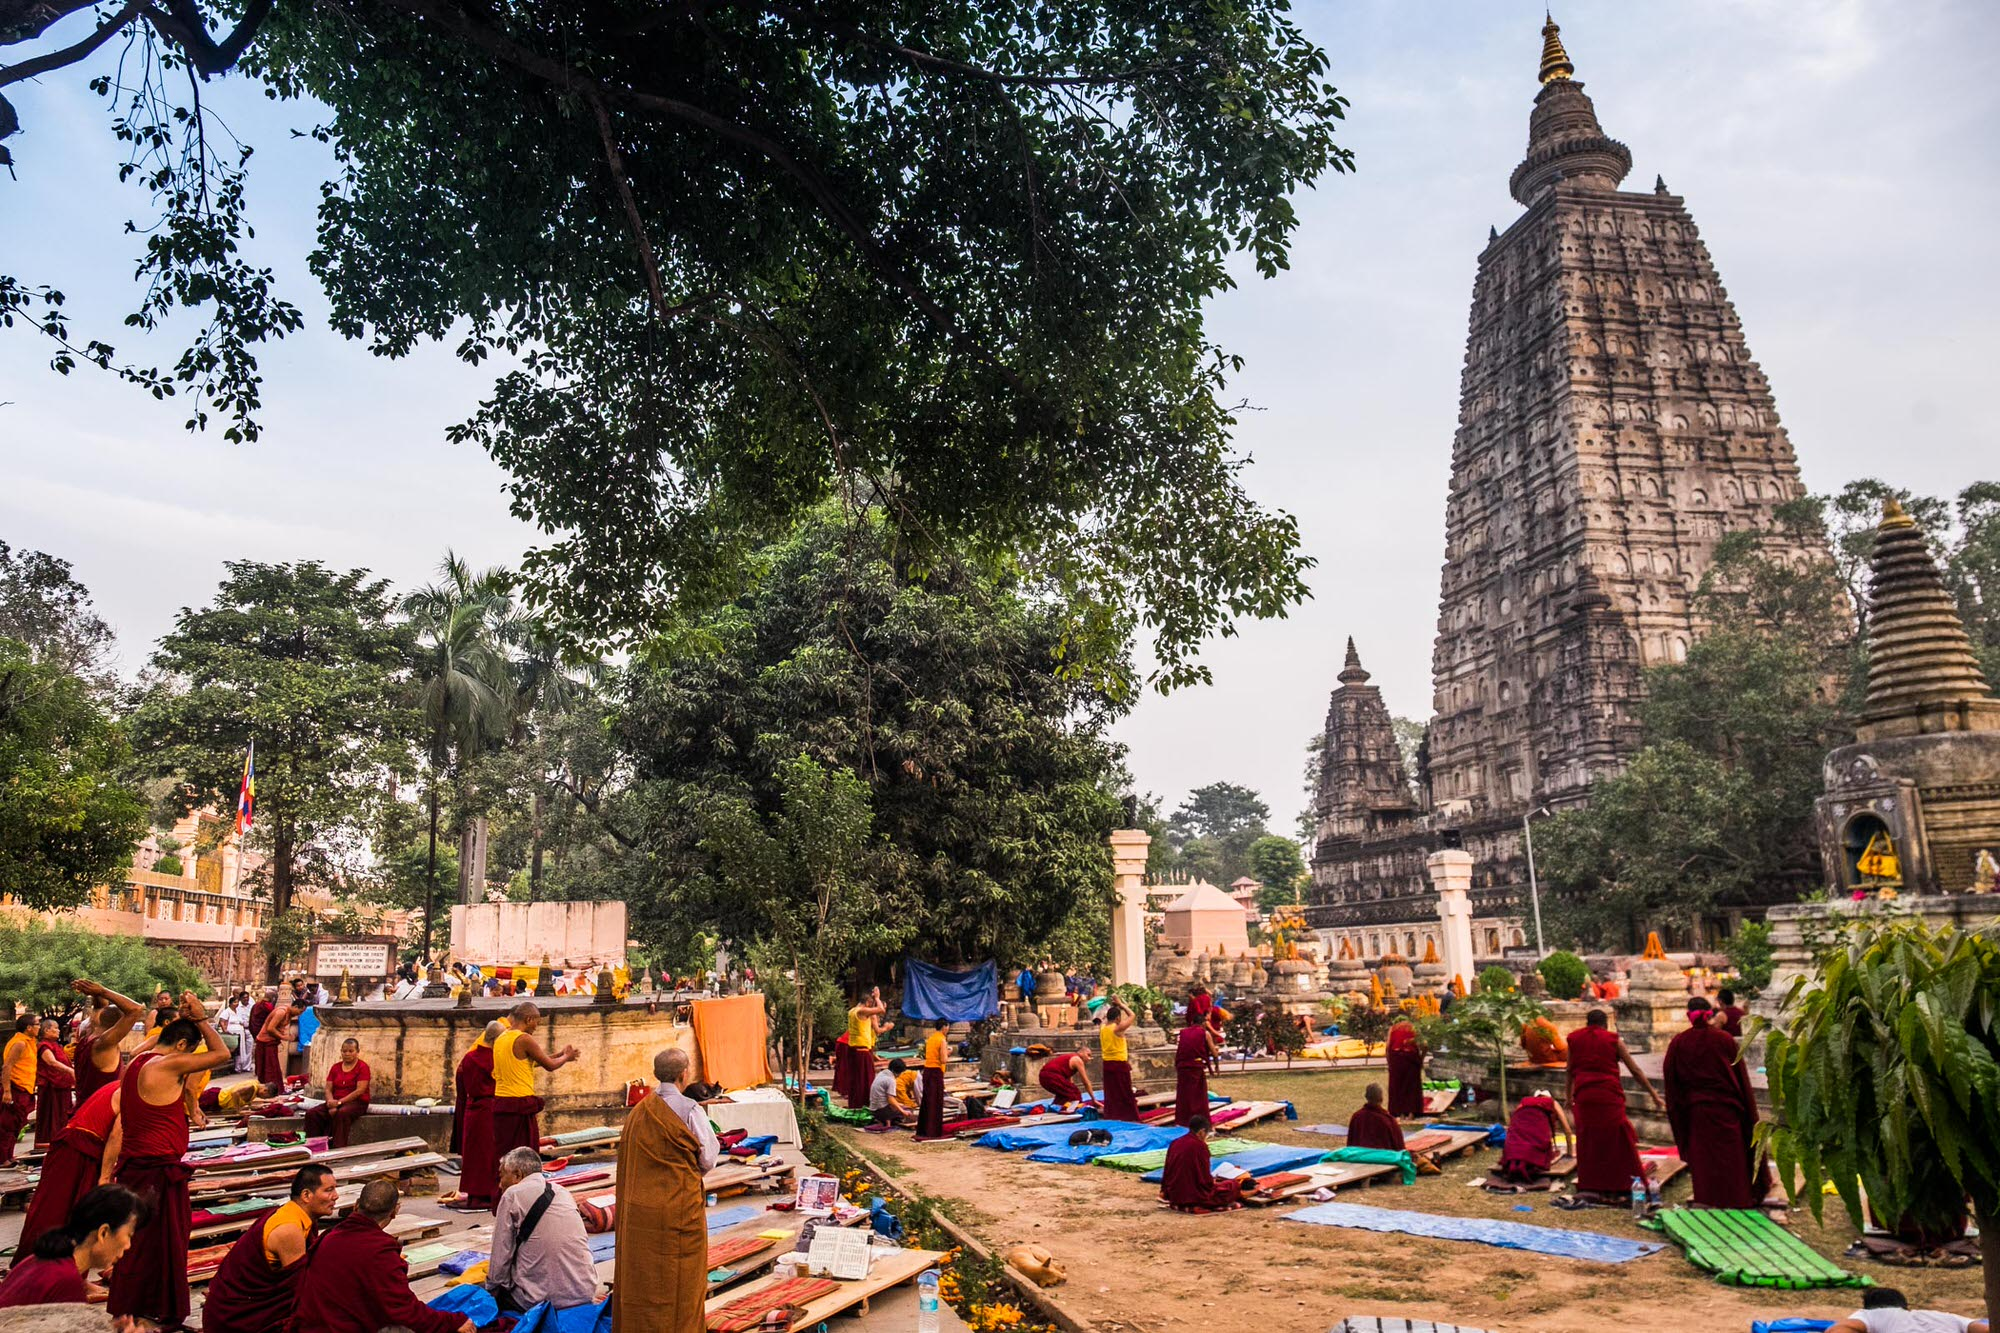 Hundreds of monks visit the Mahabodhi temple in Bodhgaya every year